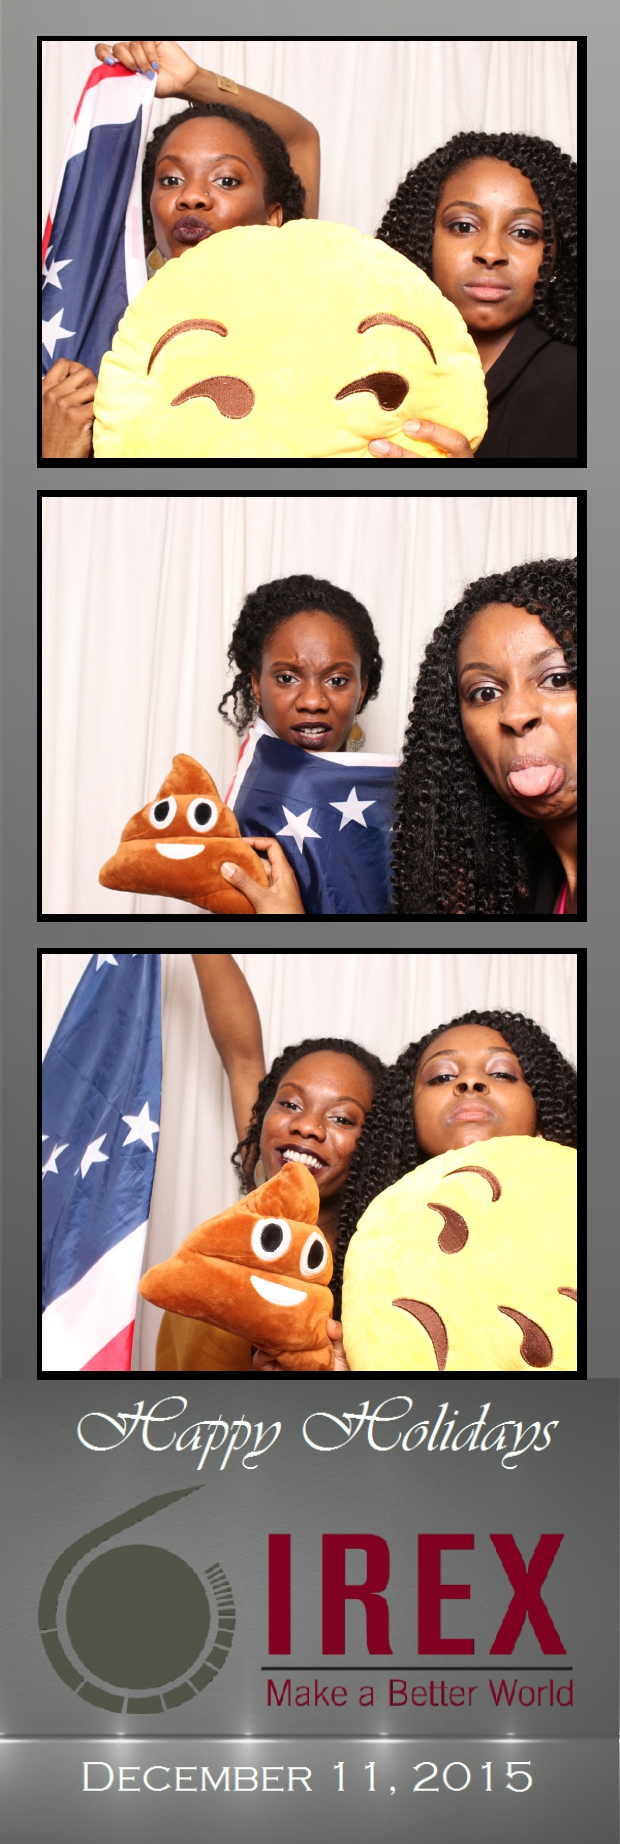 Guest House Events Photo Booth Strips IREX (98).jpg